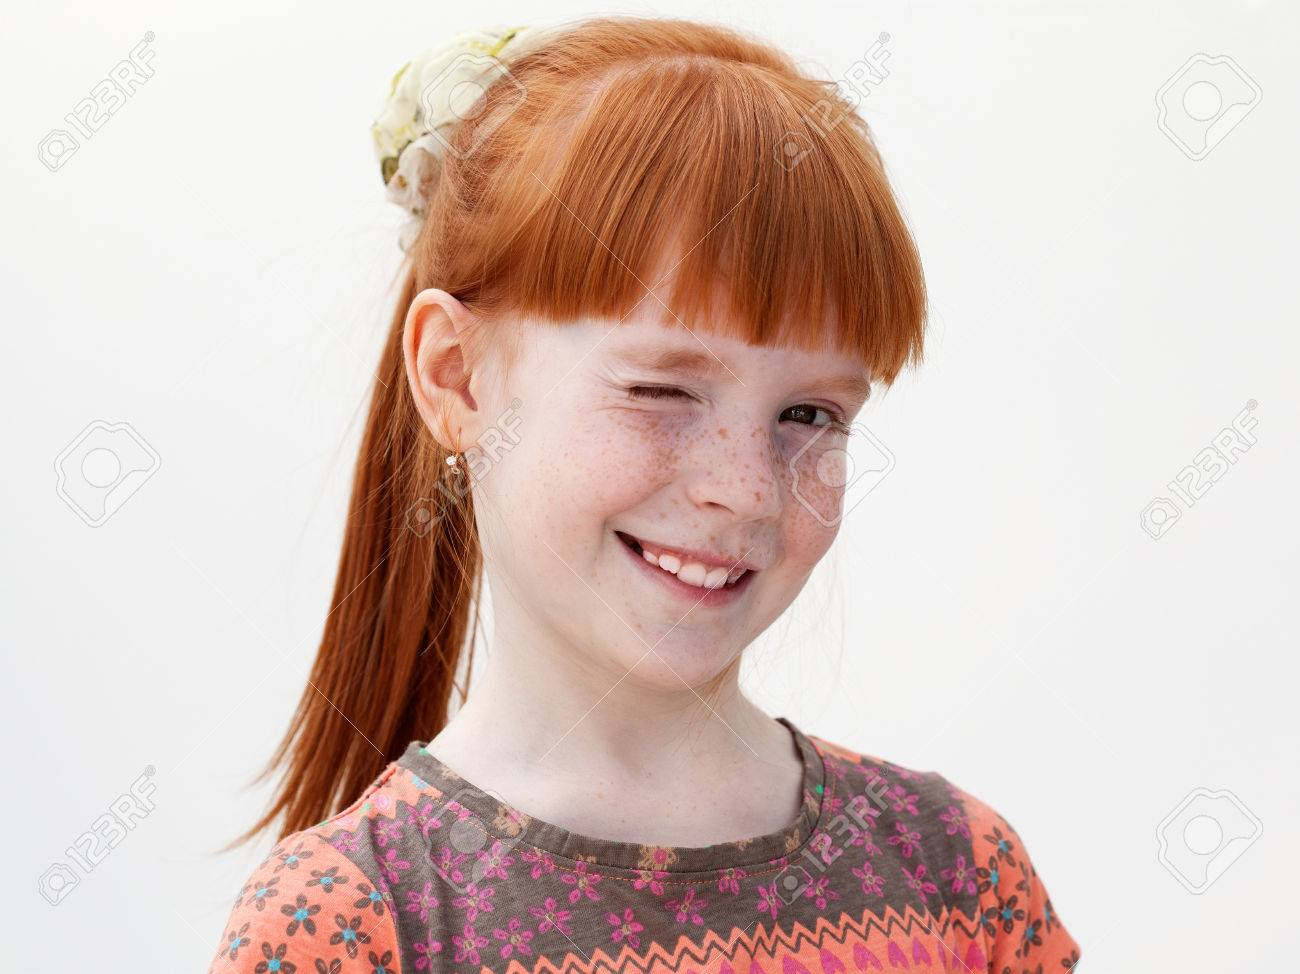 close up portrait of a ginger girl winking stock photo, picture and